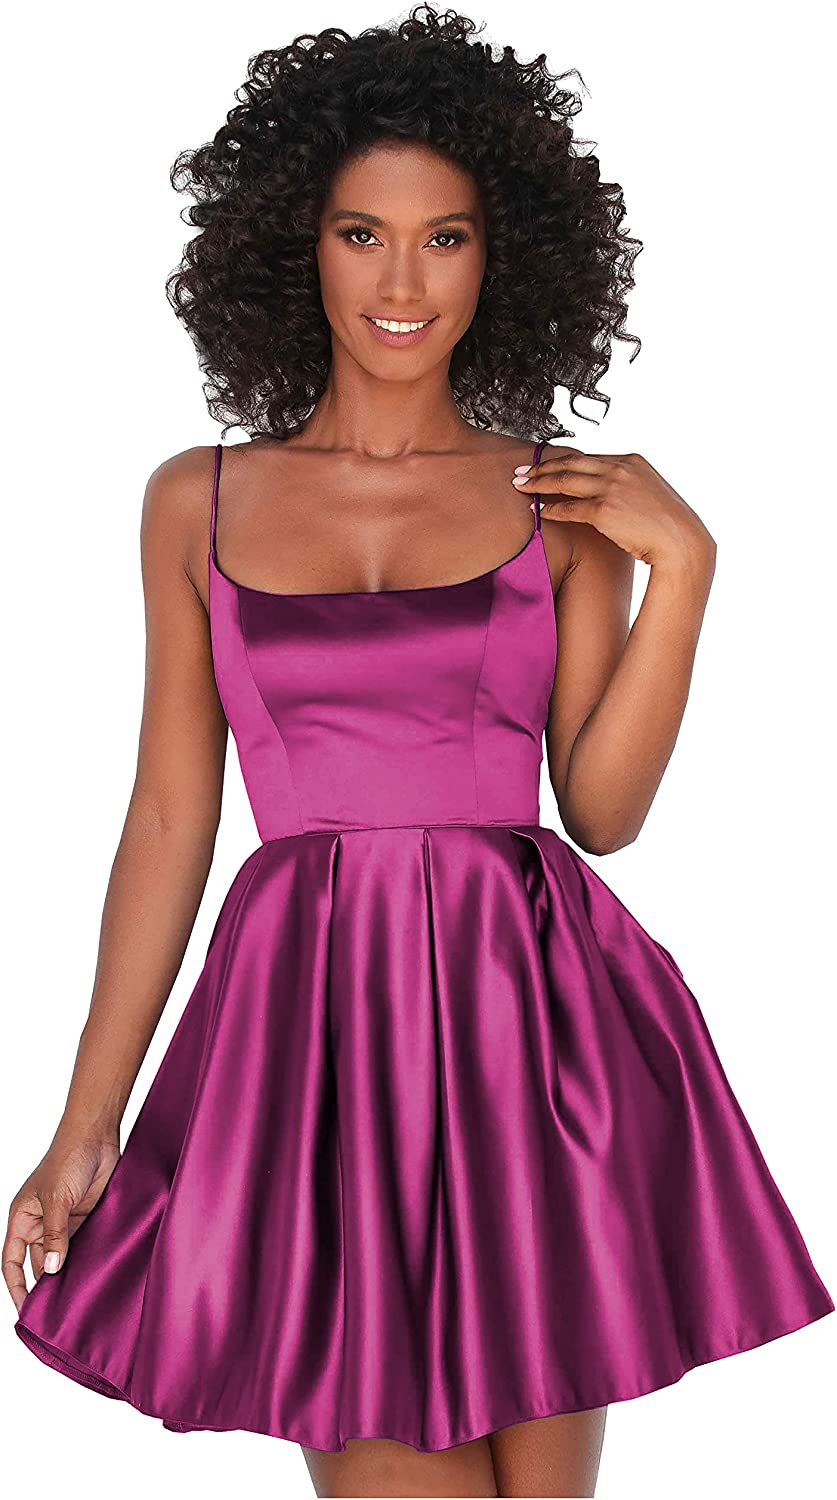 VCCICANY Scoop Neck A-Line Satin Homecoming Dress Short for Women Formal Prom Gown with Pockets